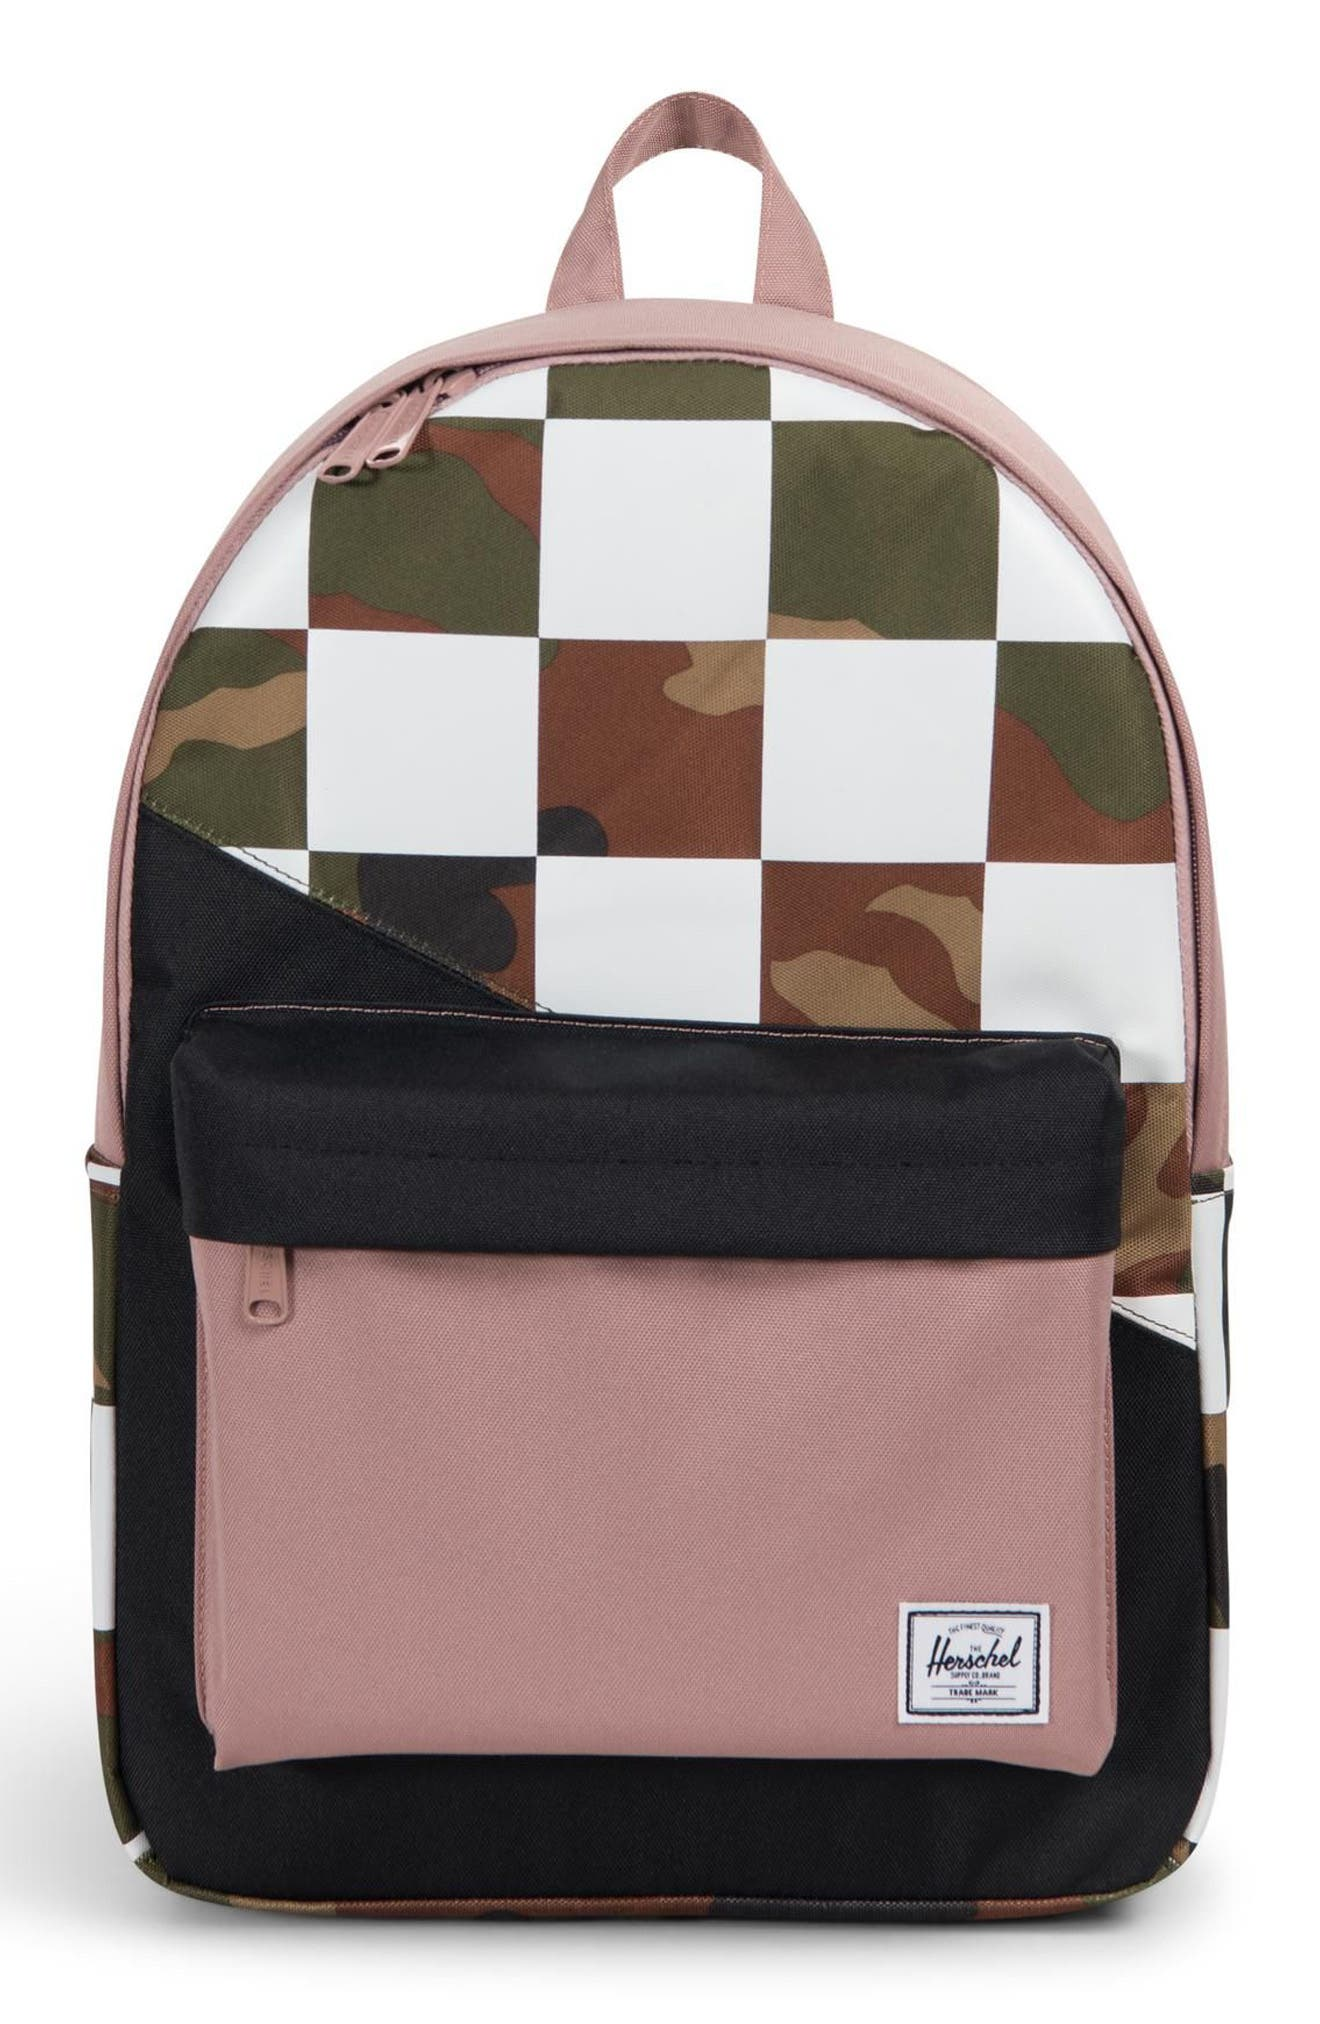 Classic Kaleidoscope Backpack,                             Main thumbnail 1, color,                             WOODLAND/ ASH ROSE/ CHECKER